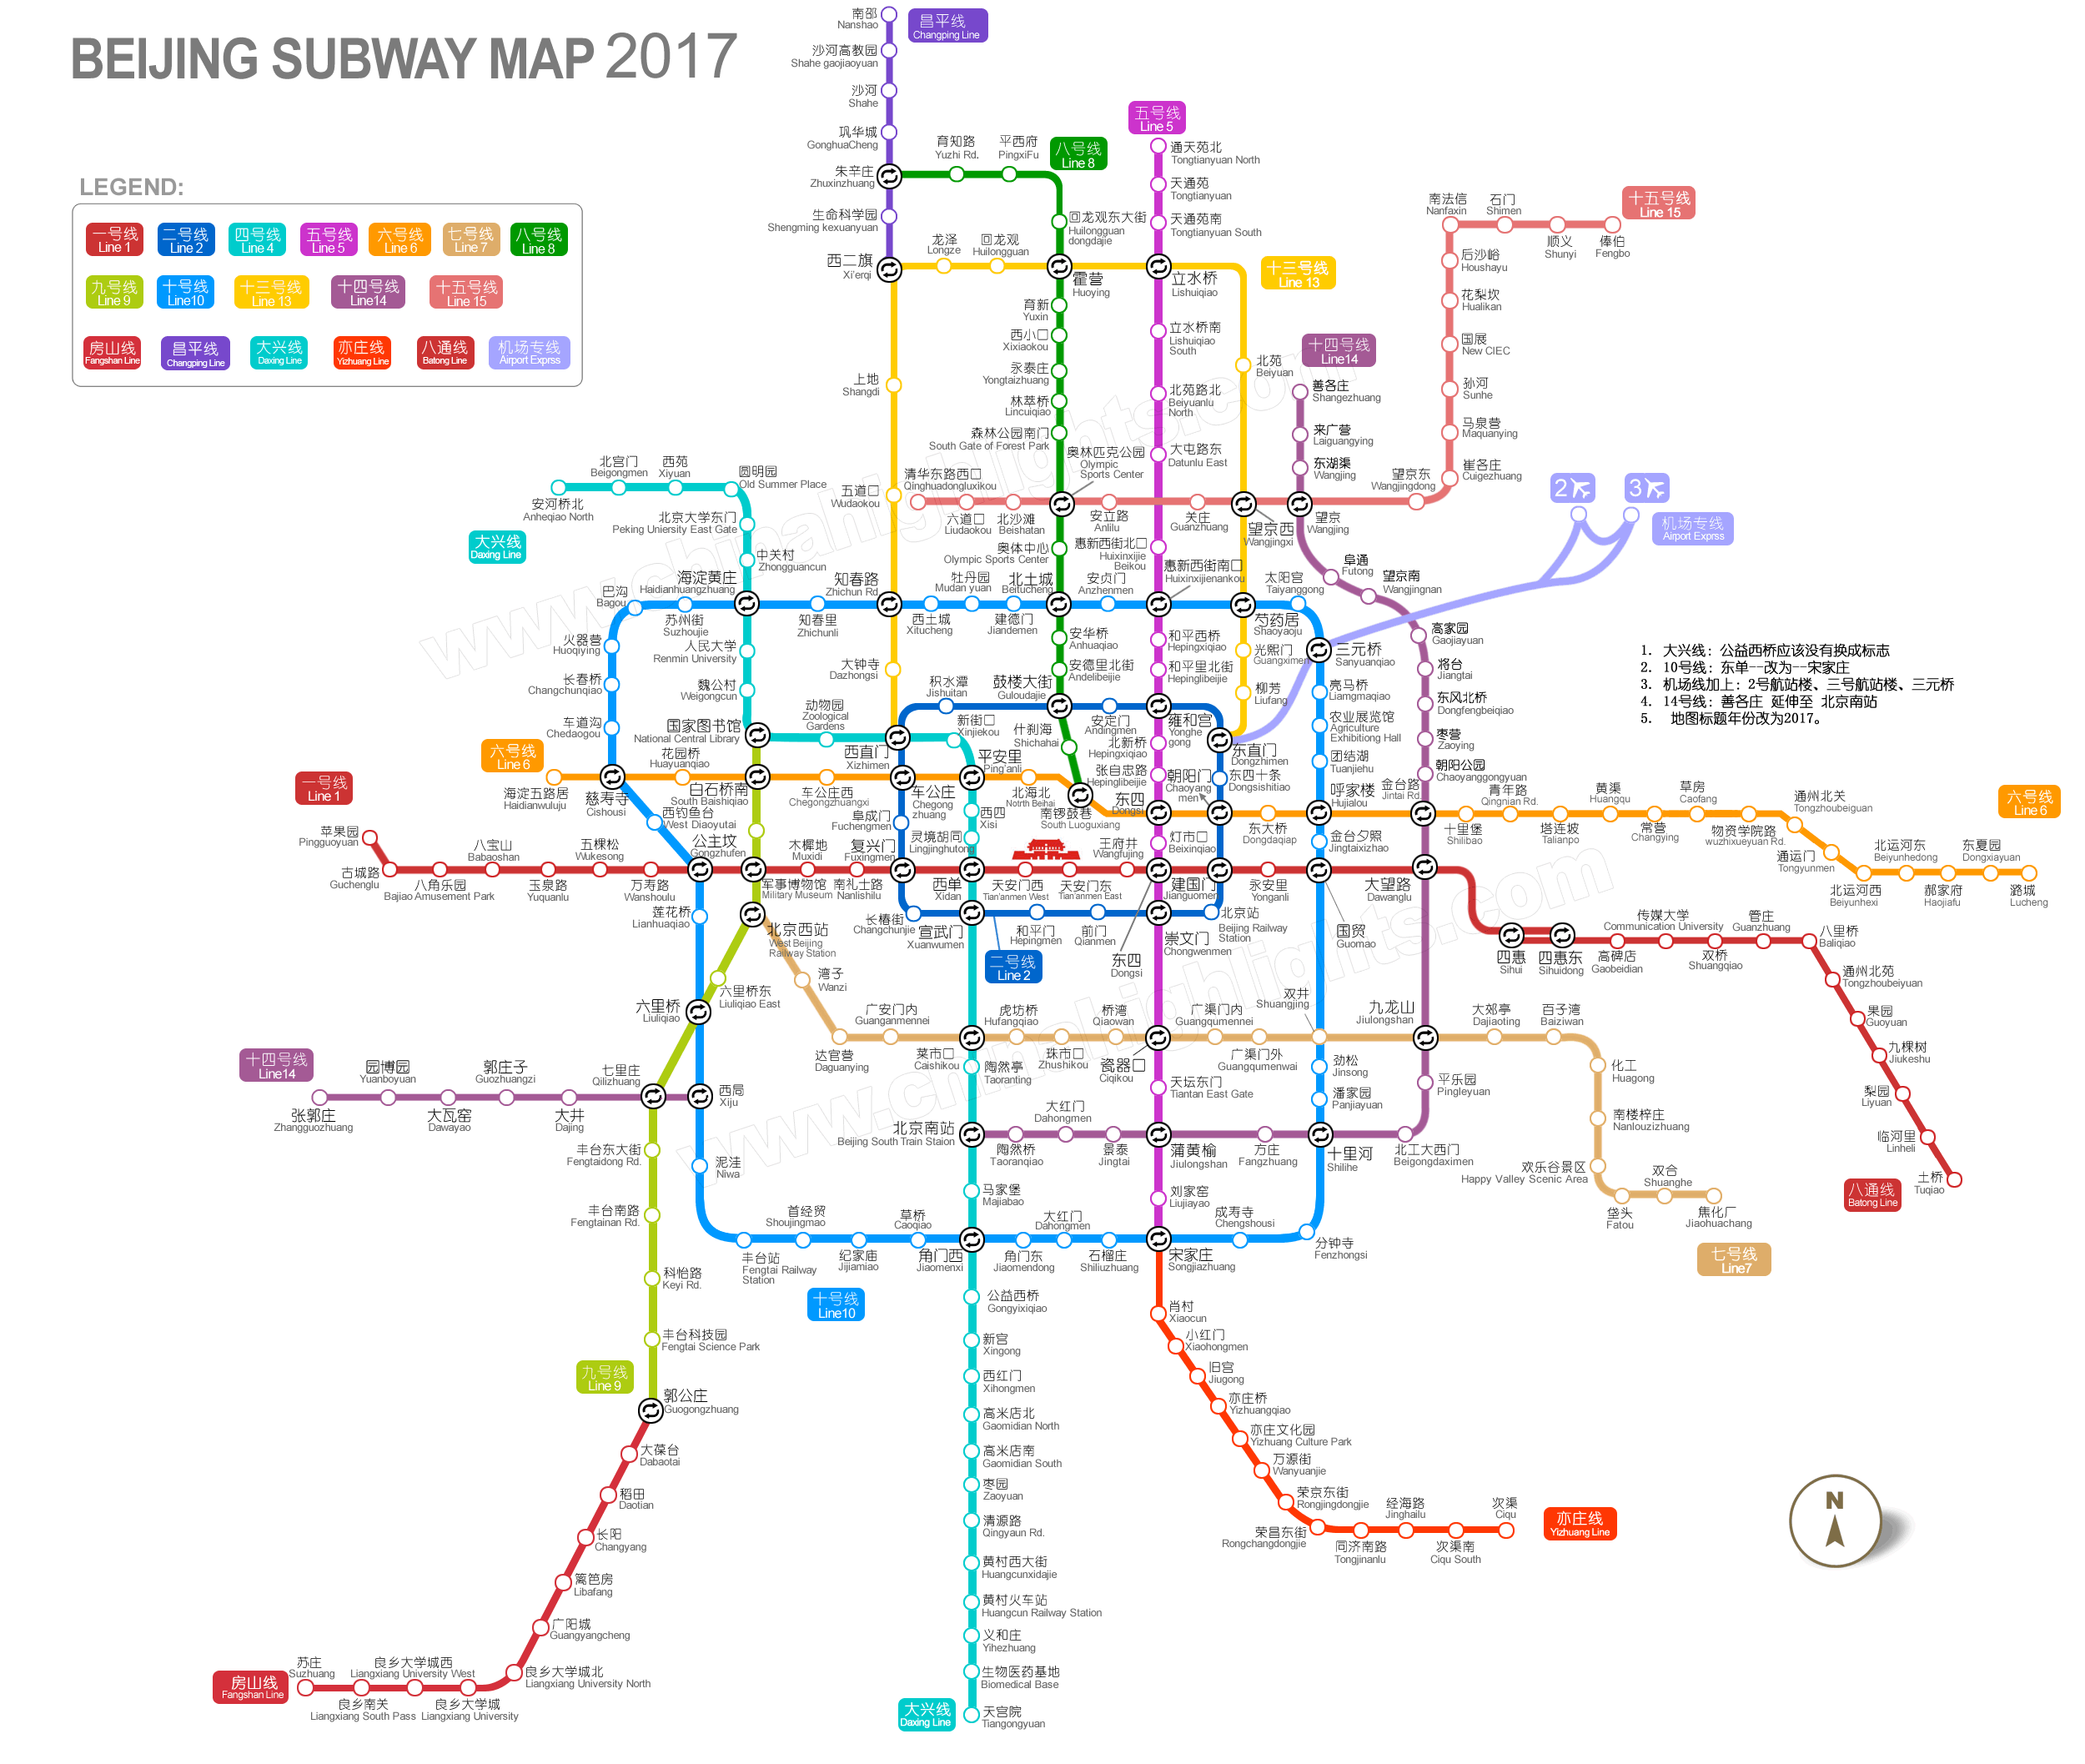 Beijing Subway Map 2017 Latest Maps of Beijing Subway and Stations